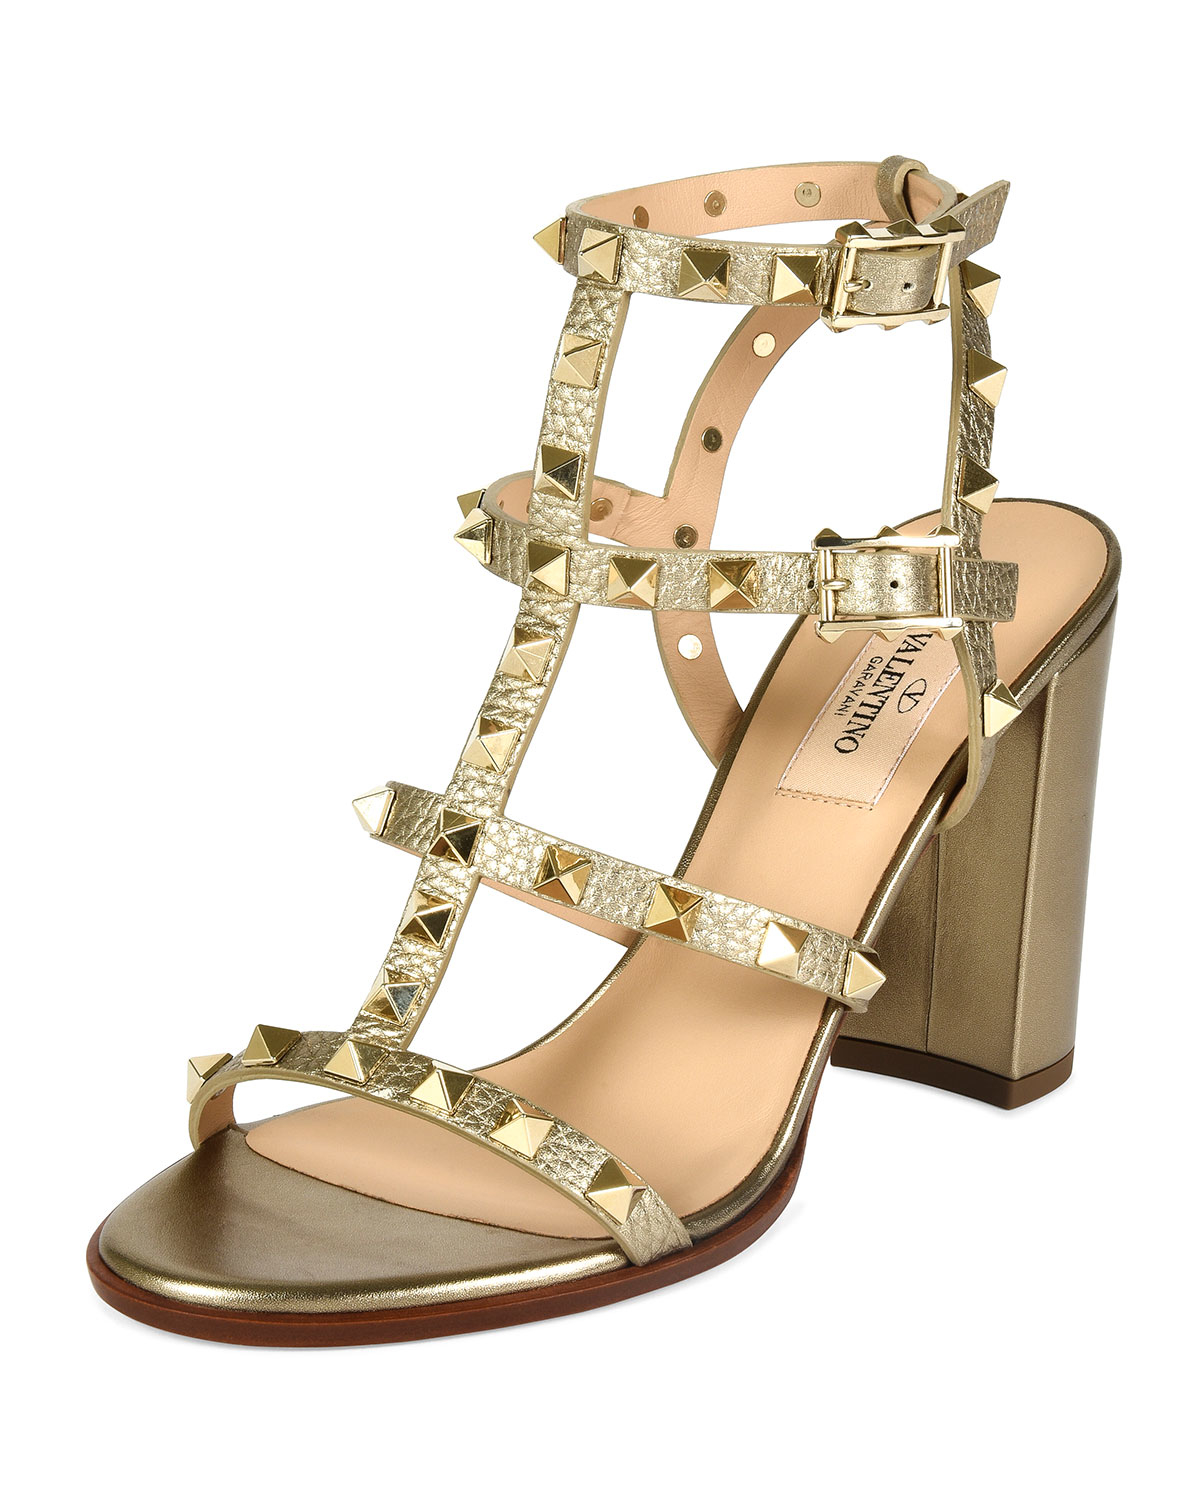 9cd58496b63 Lyst - Valentino Rockstud 90mm Metallic-Leather Sandals in Metallic